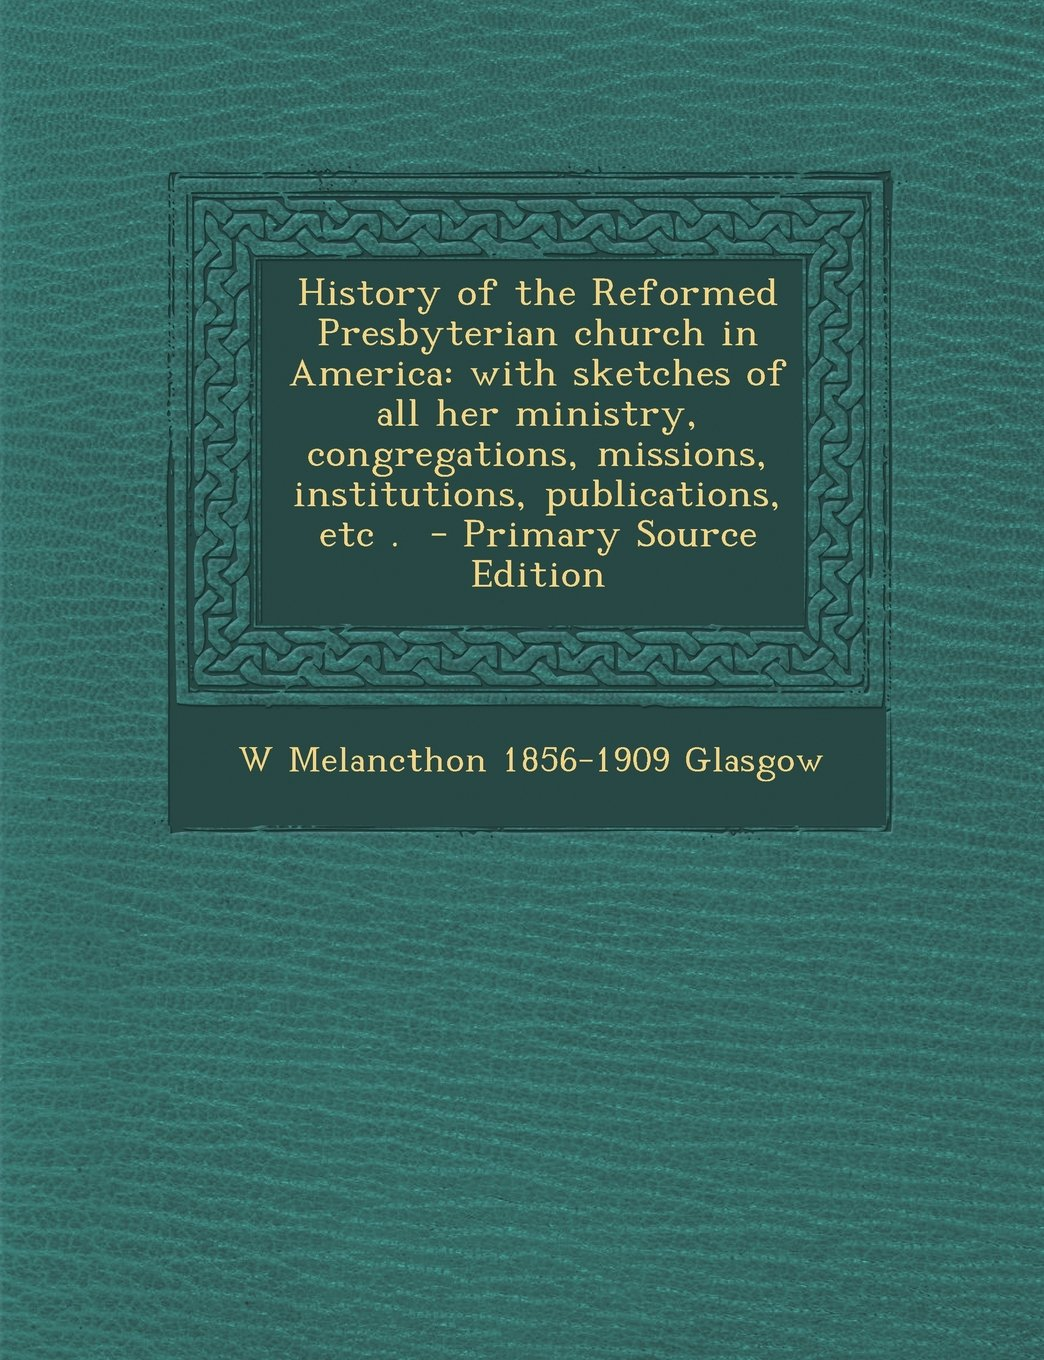 Download History of the Reformed Presbyterian Church in America: With Sketches of All Her Ministry, Congregations, Missions, Institutions, Publications, Etc . PDF